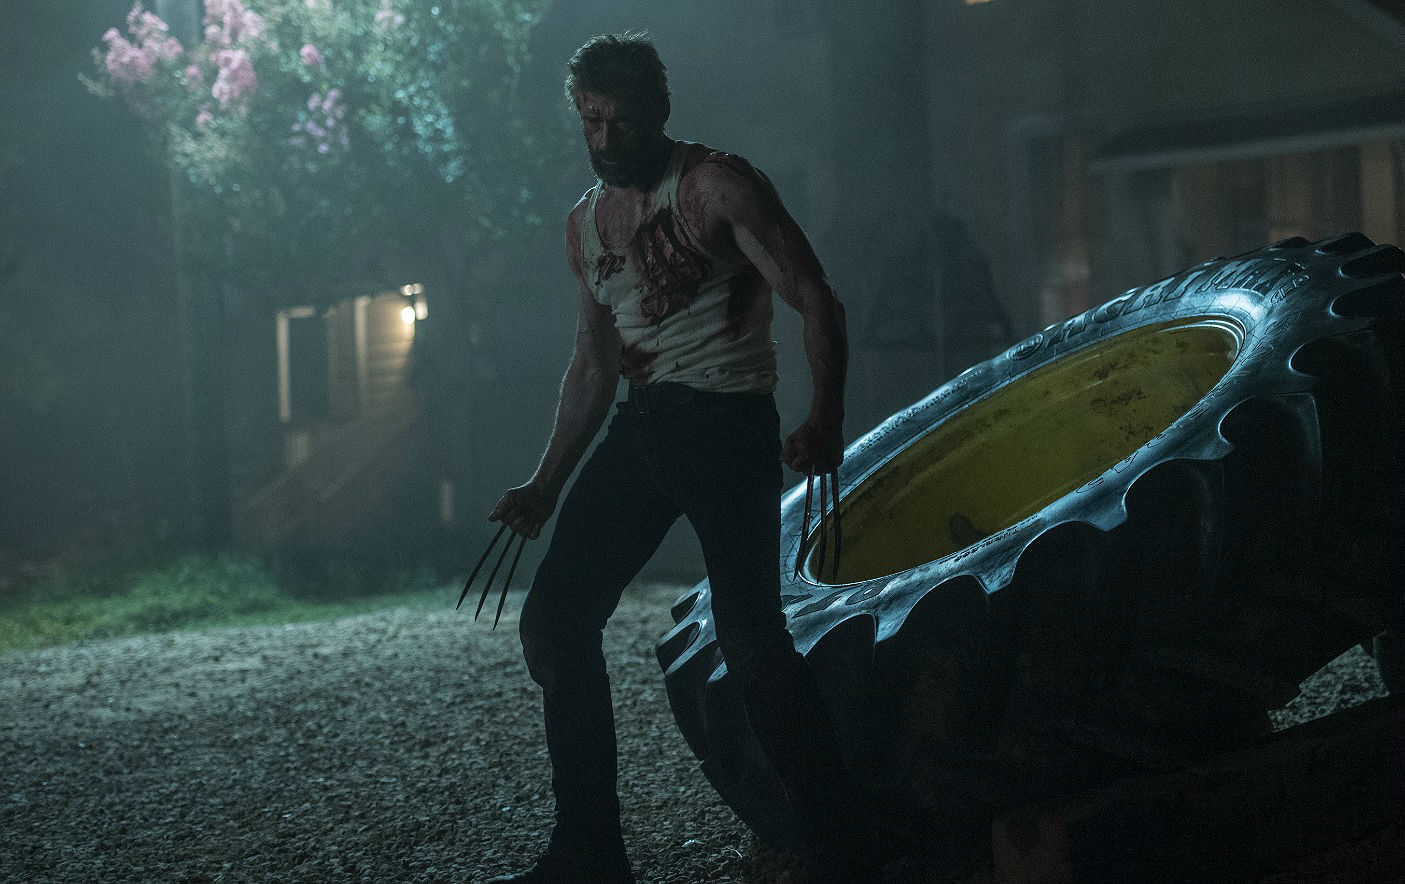 Logan: A movie with few superheroes?